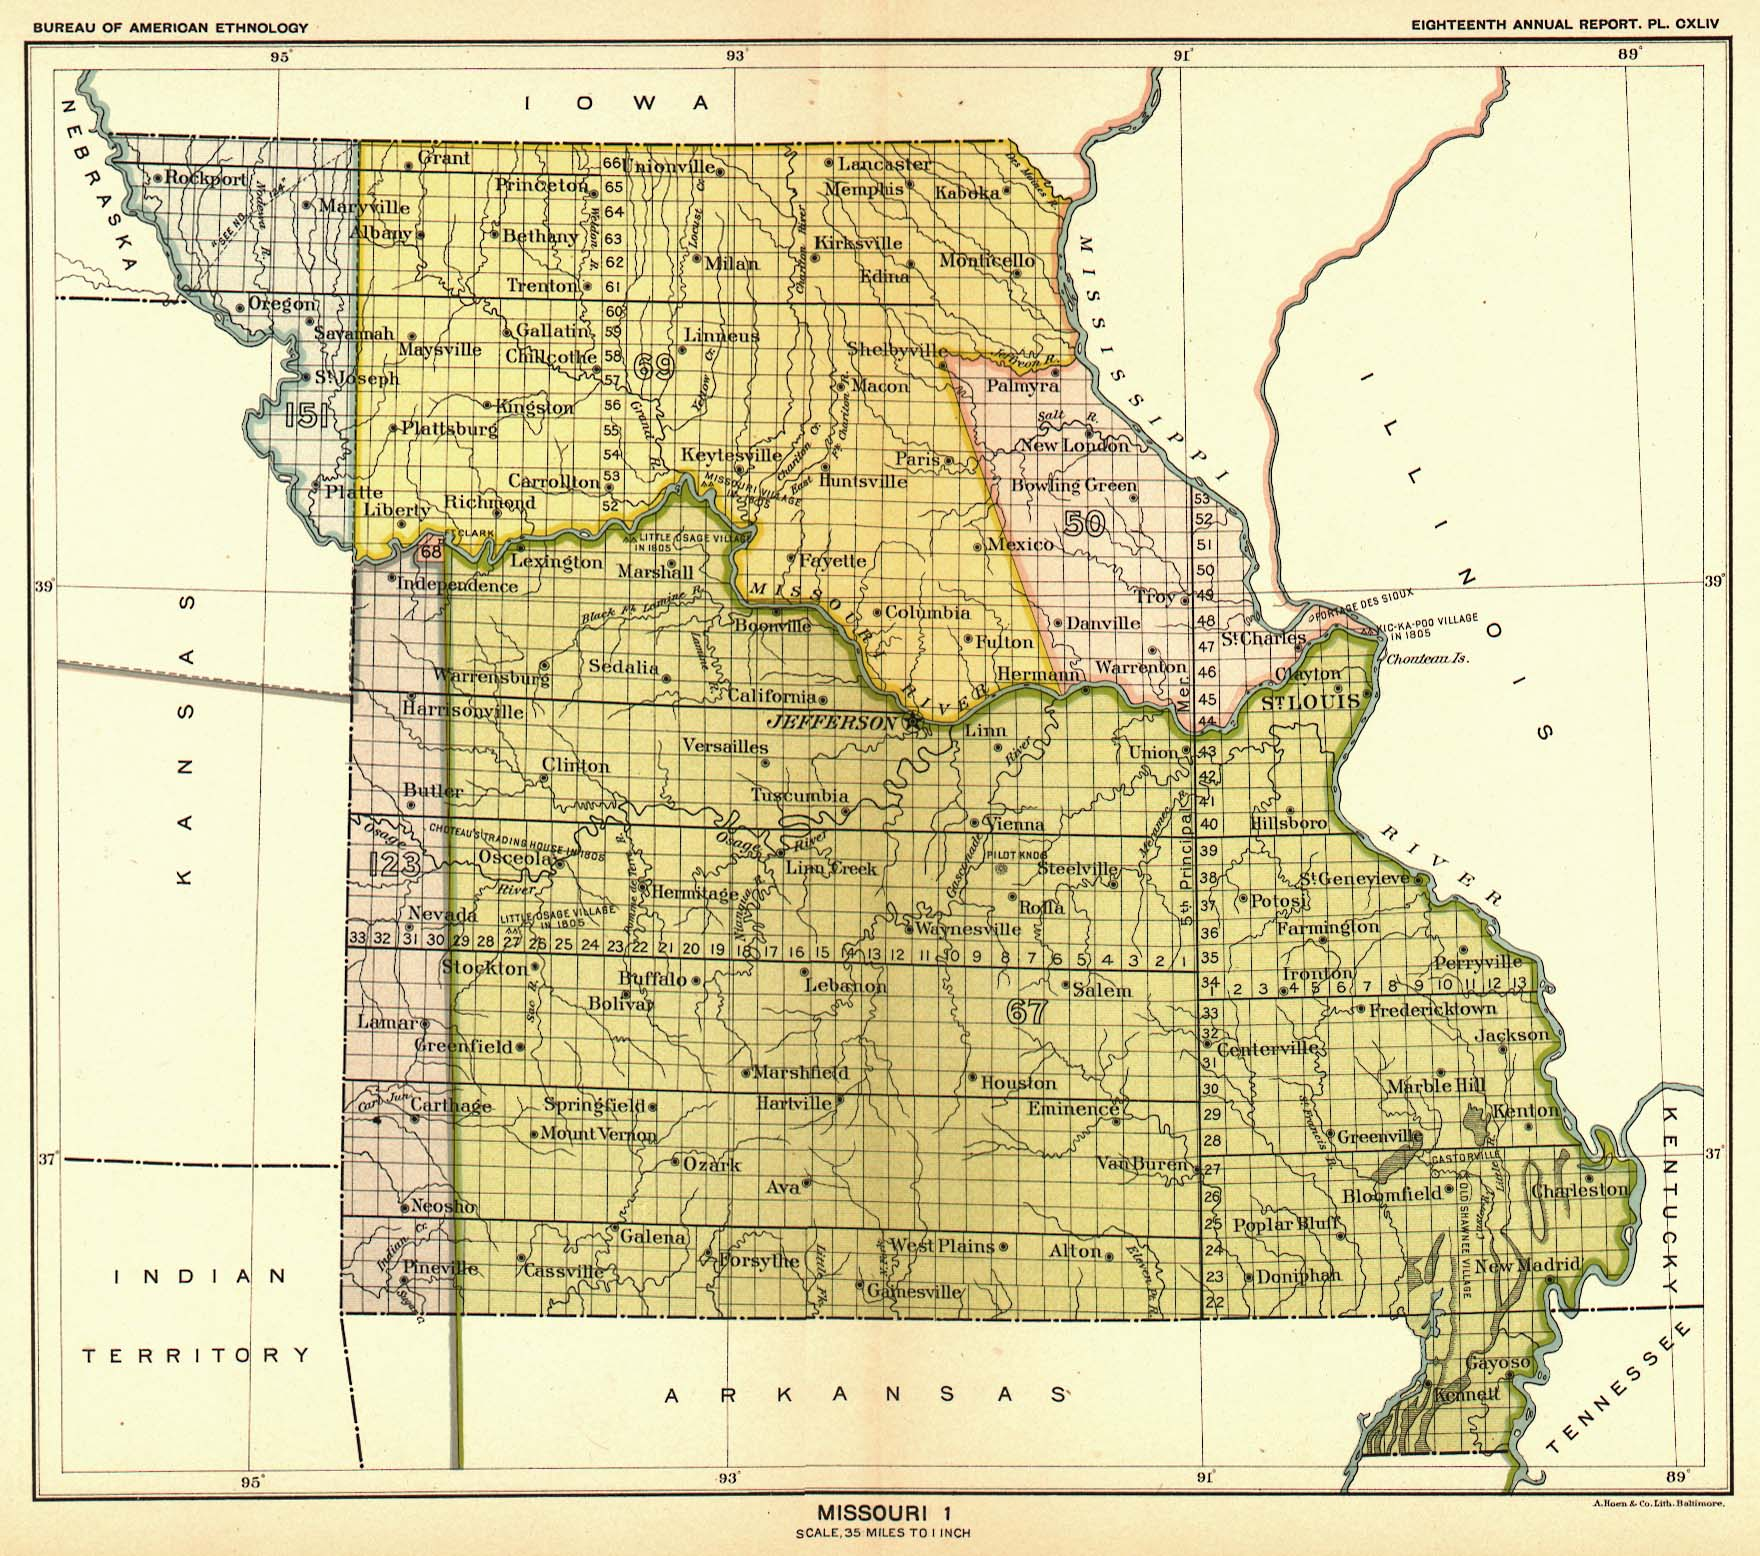 Indian Land Cessions Maps and Treaties in Arkansas Indian